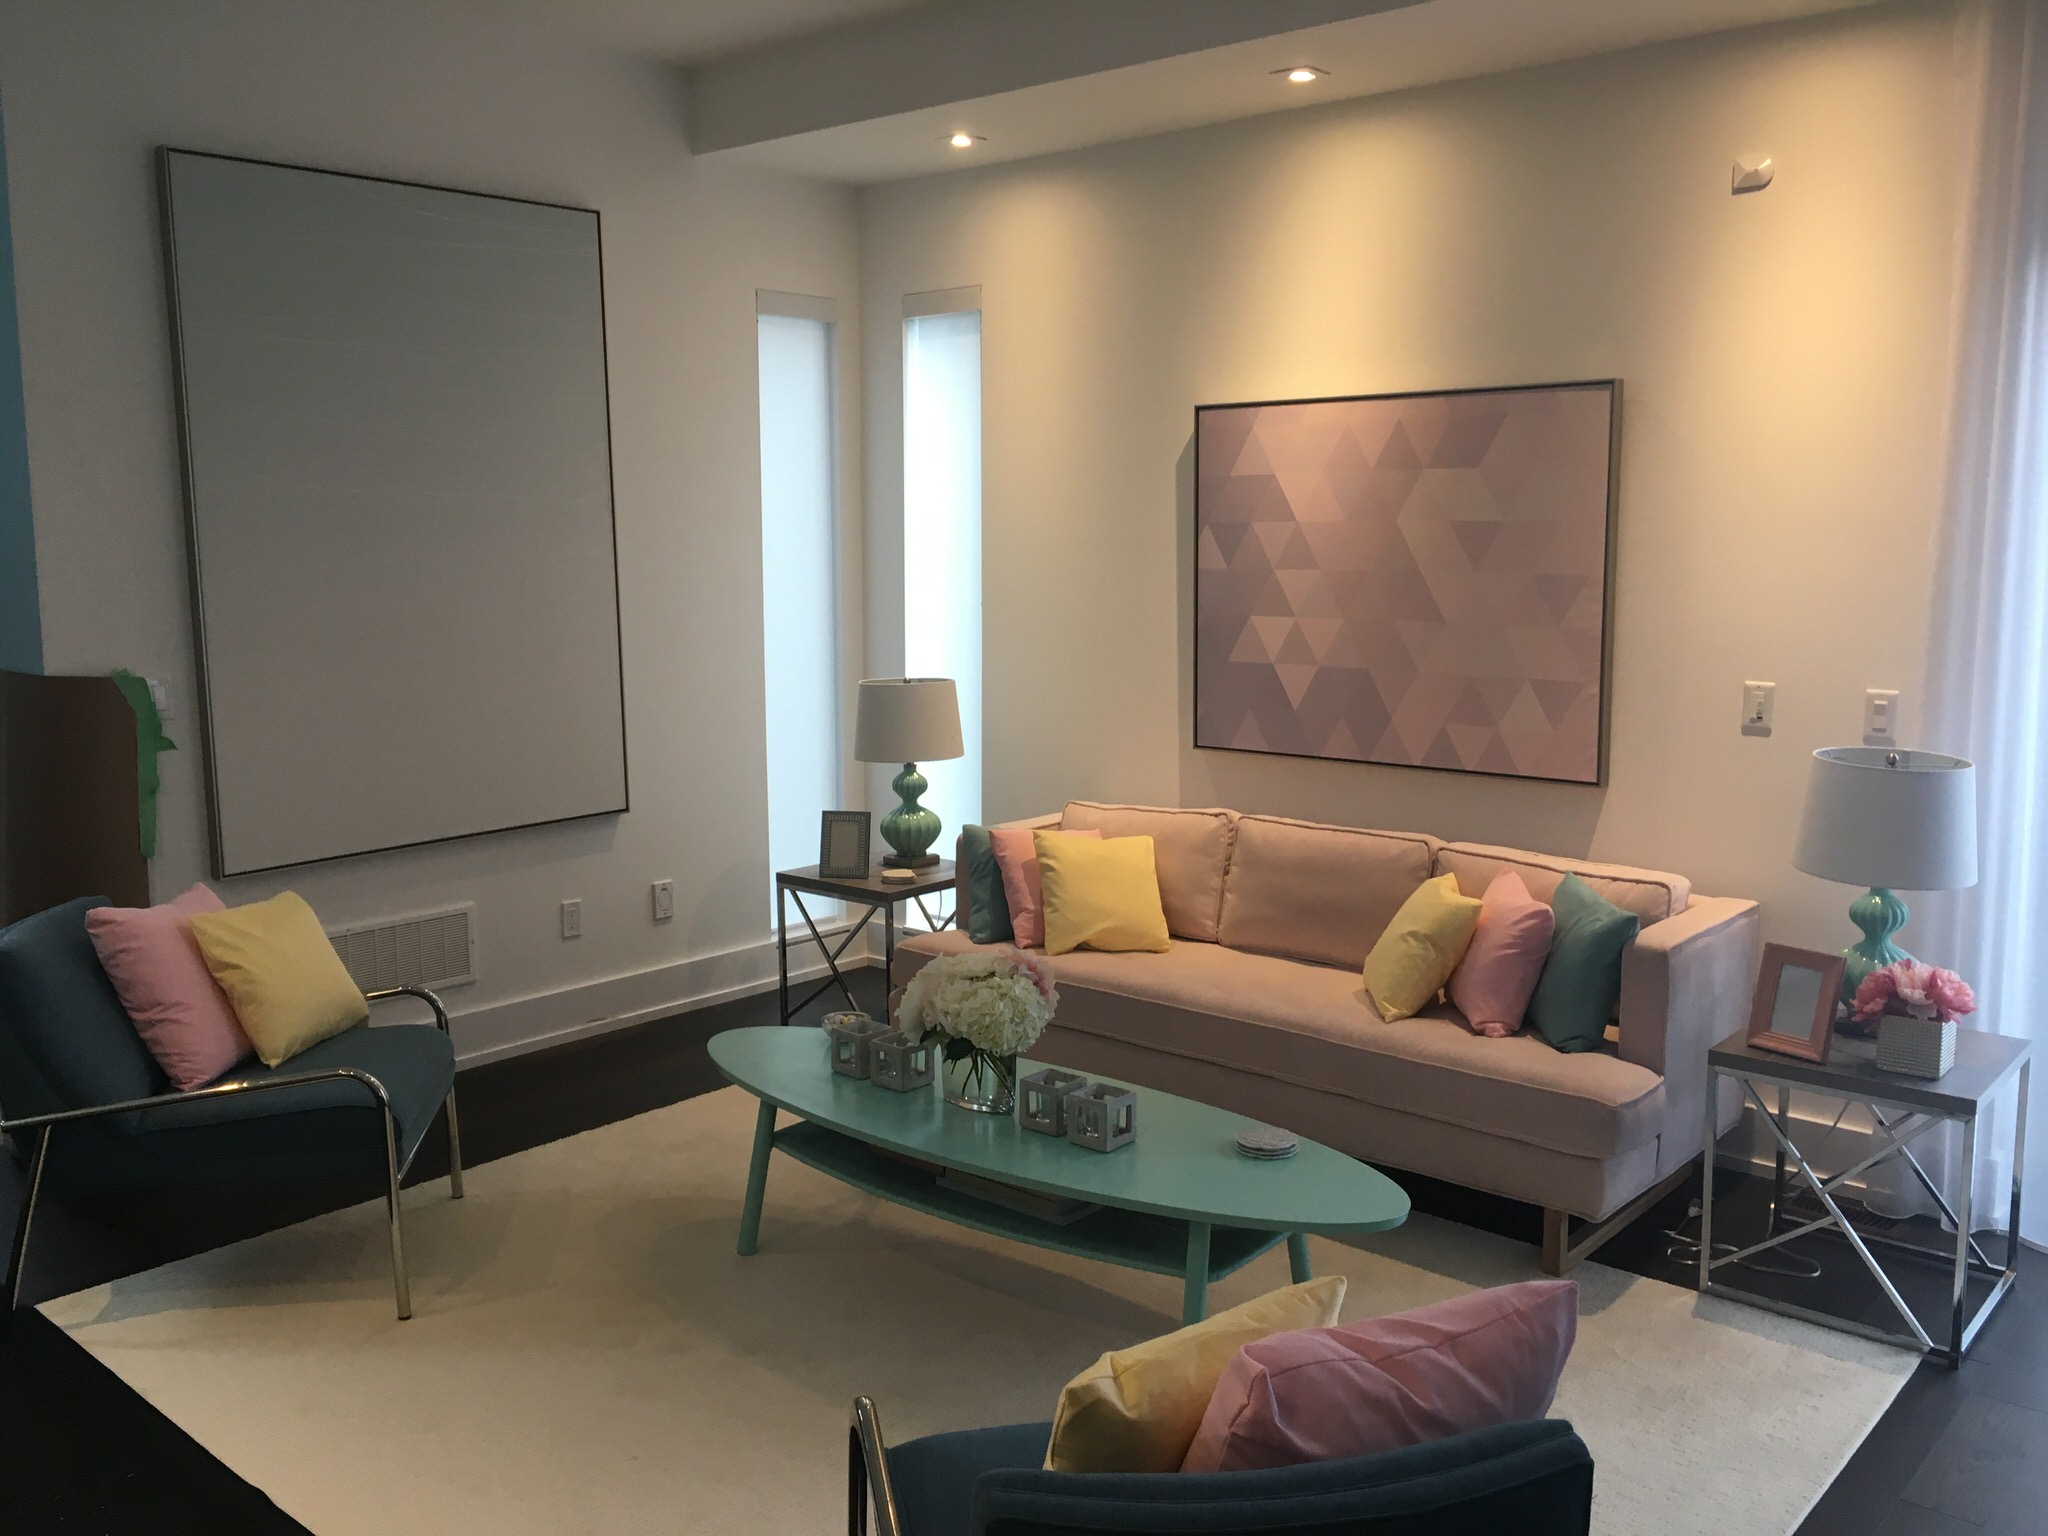 Even the domestic interiors reflect a ruthlessly enforced pastel palette. Everything in it's perfect order, the good people of Seabrook only look forward, never back. The home of the young heroine Addison (Meg Donnelly) reflects that comfortable conformity.